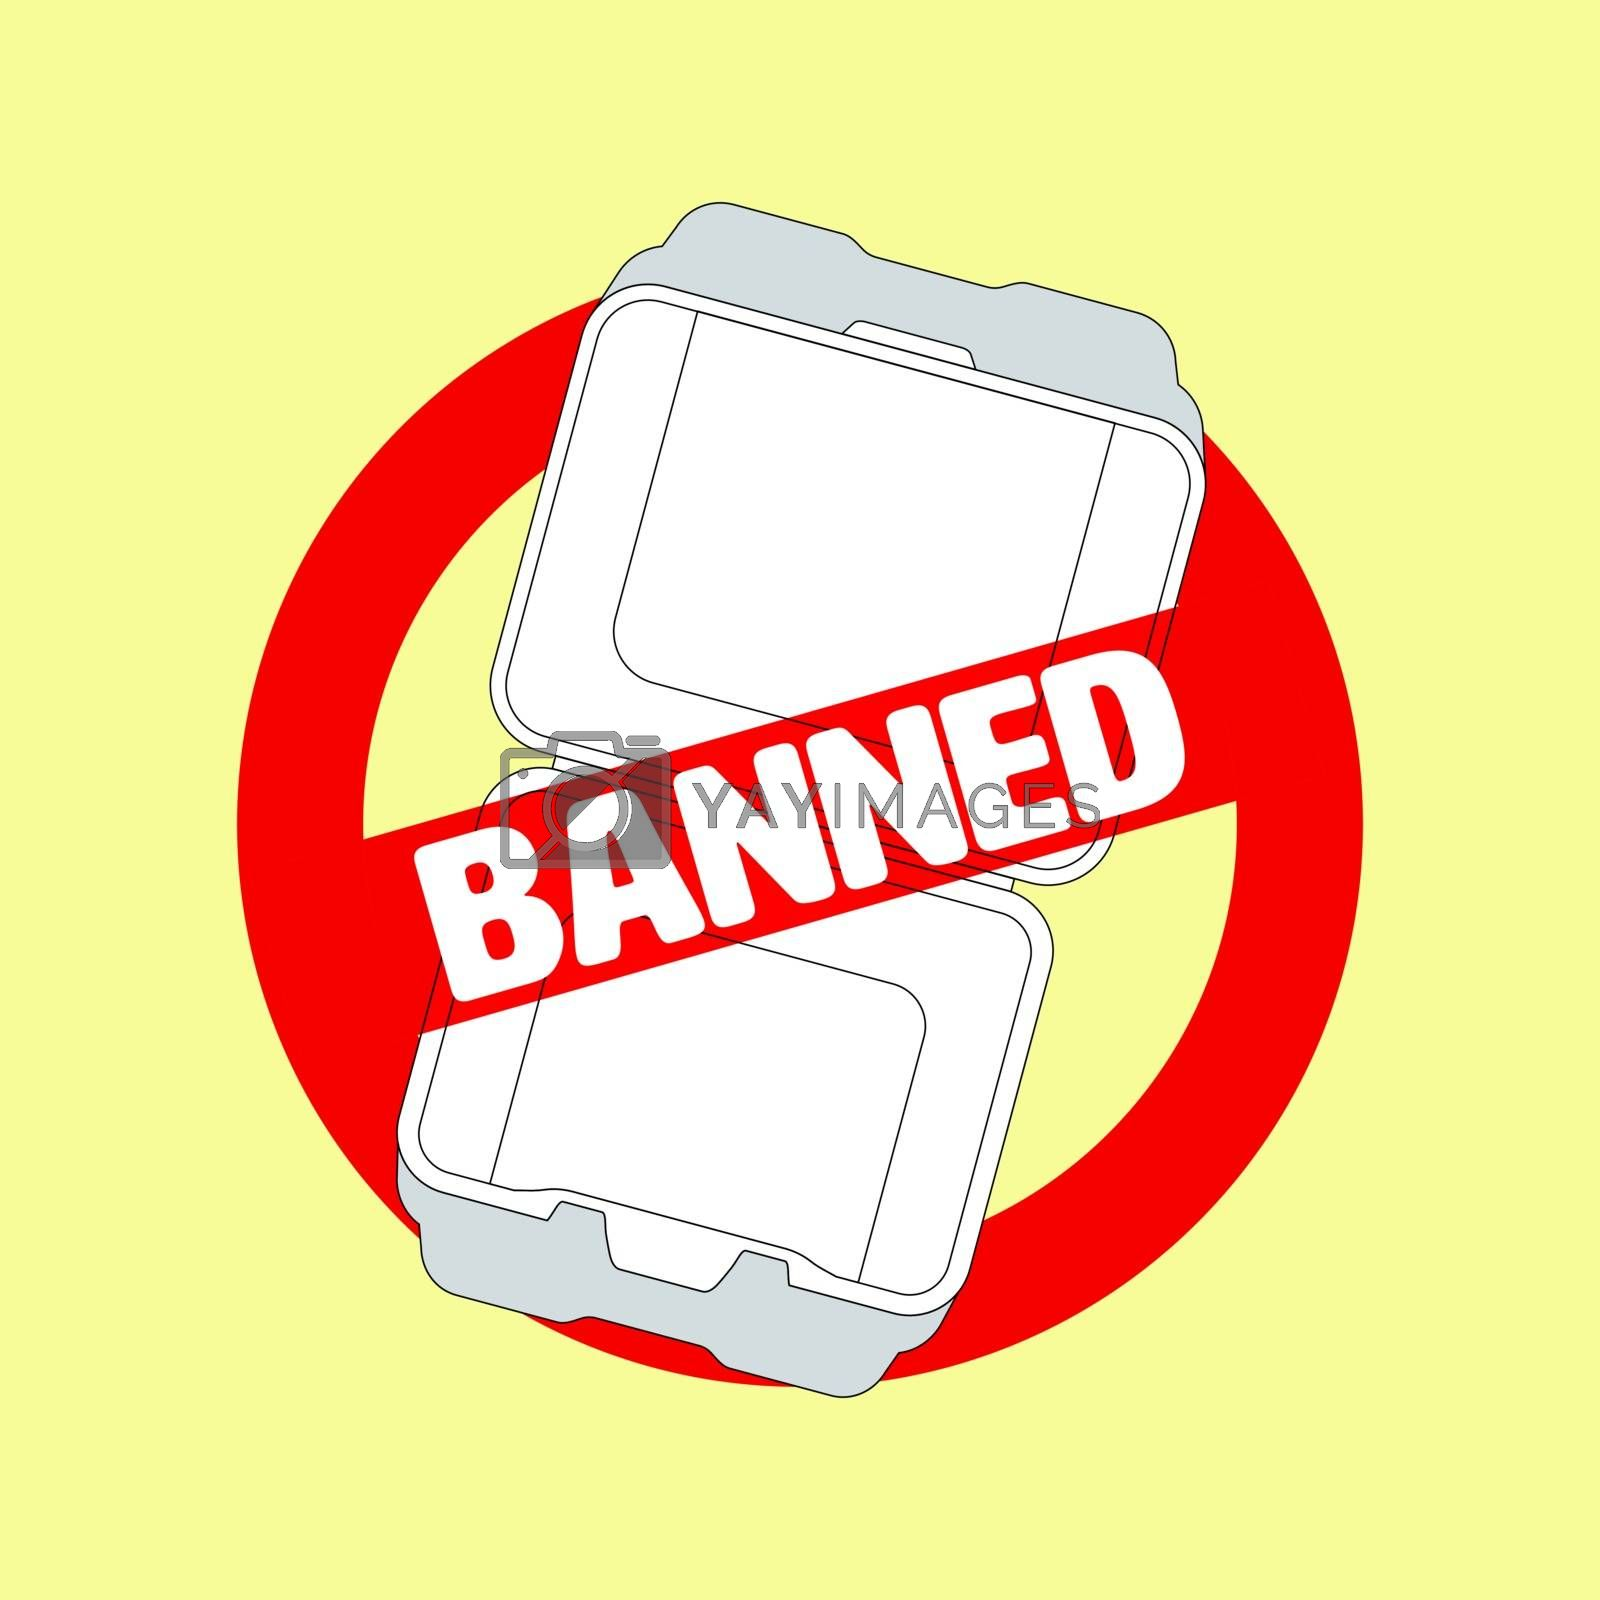 Ban symbol and outline flat icon of styrofoam container. Ban styrofoam concept. Vector illustration.